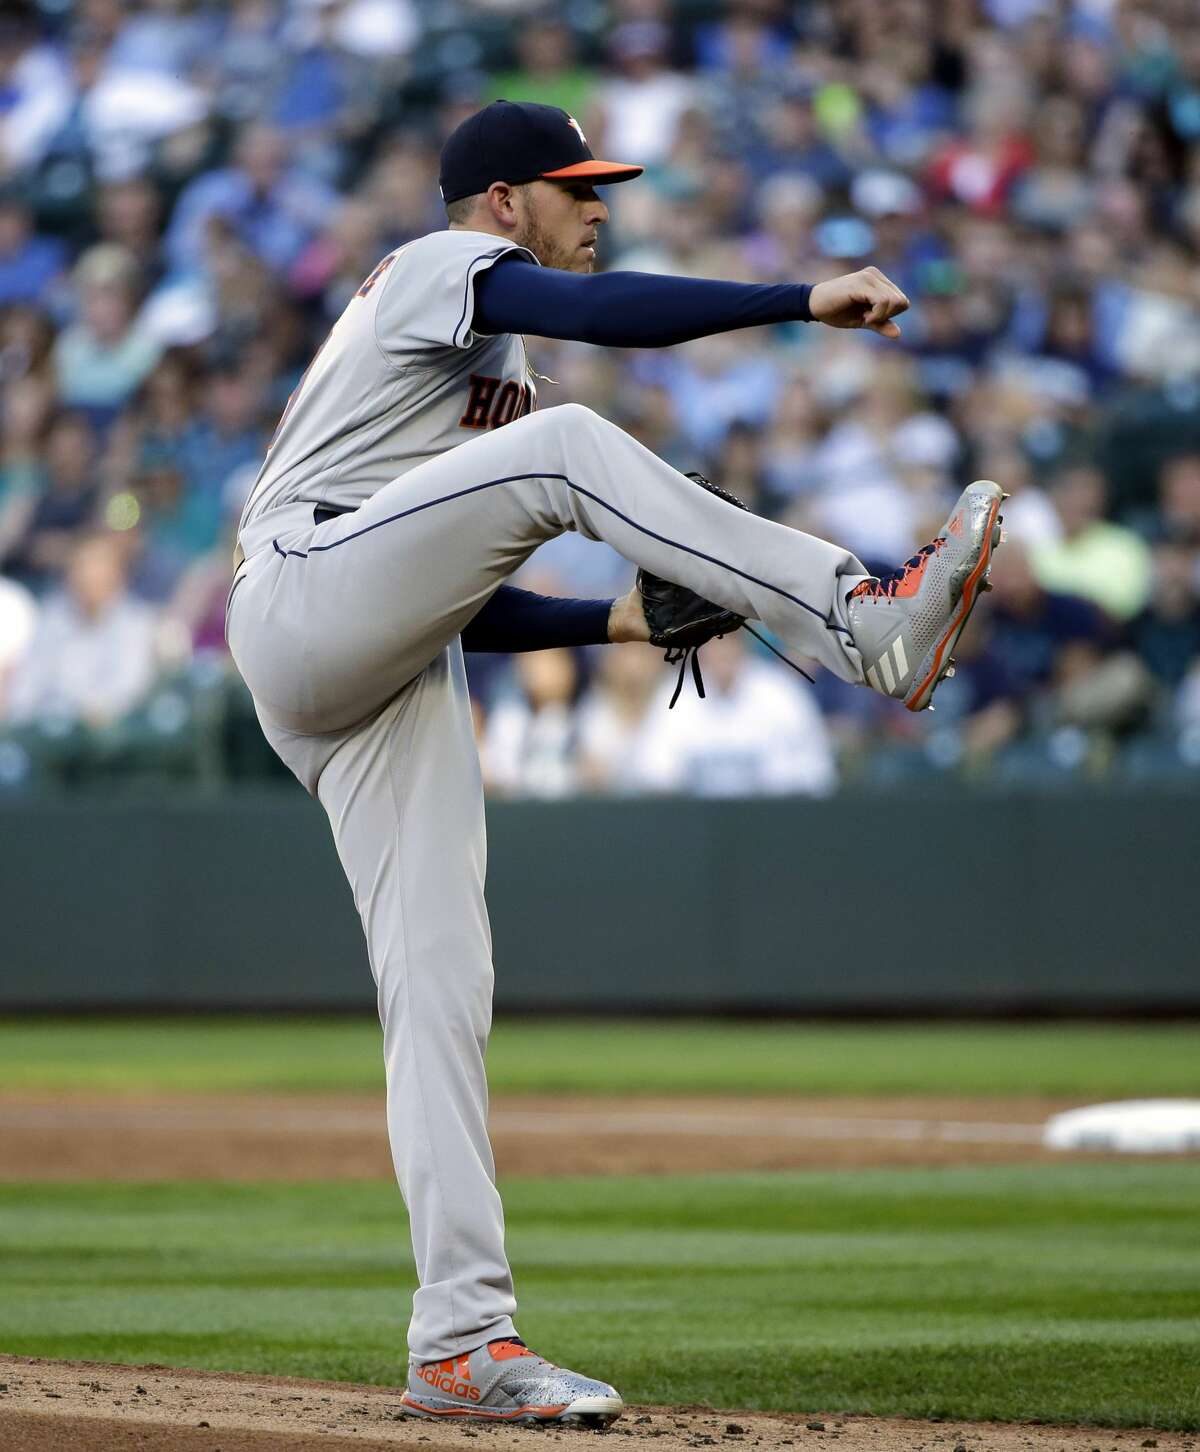 Houston Astros starting pitcher Joe Musgrove follows-through as he throws against the Seattle Mariners in the first inning of a baseball game Friday, June 23, 2017, in Seattle. (AP Photo/Elaine Thompson)